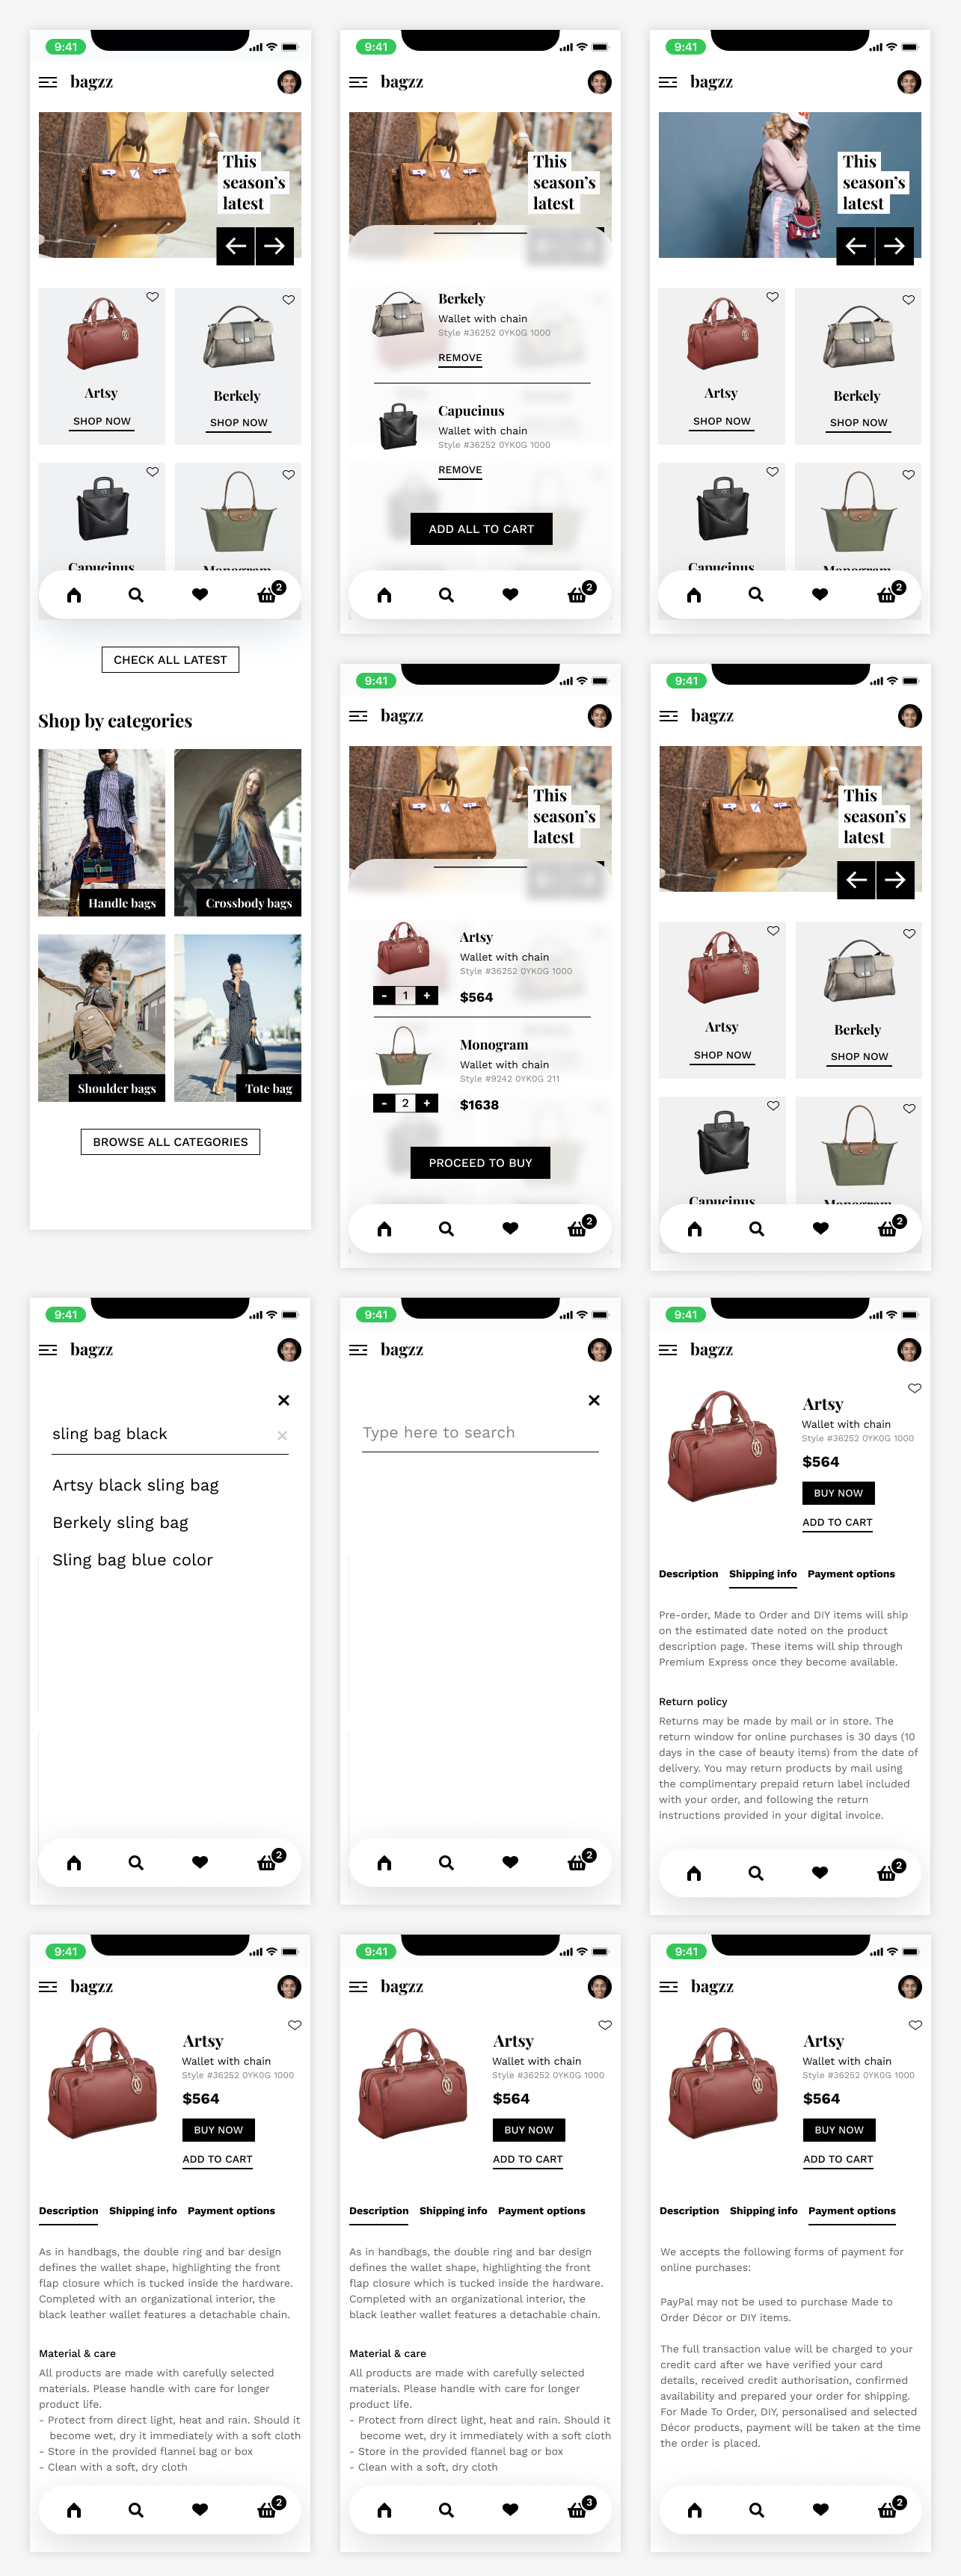 Bagzz - Free Shopping UI Kit for Figma - Bagzz is a minimal & modern shopping app UI kit. This free UI kit has basic app screens and prototypes to get you started.